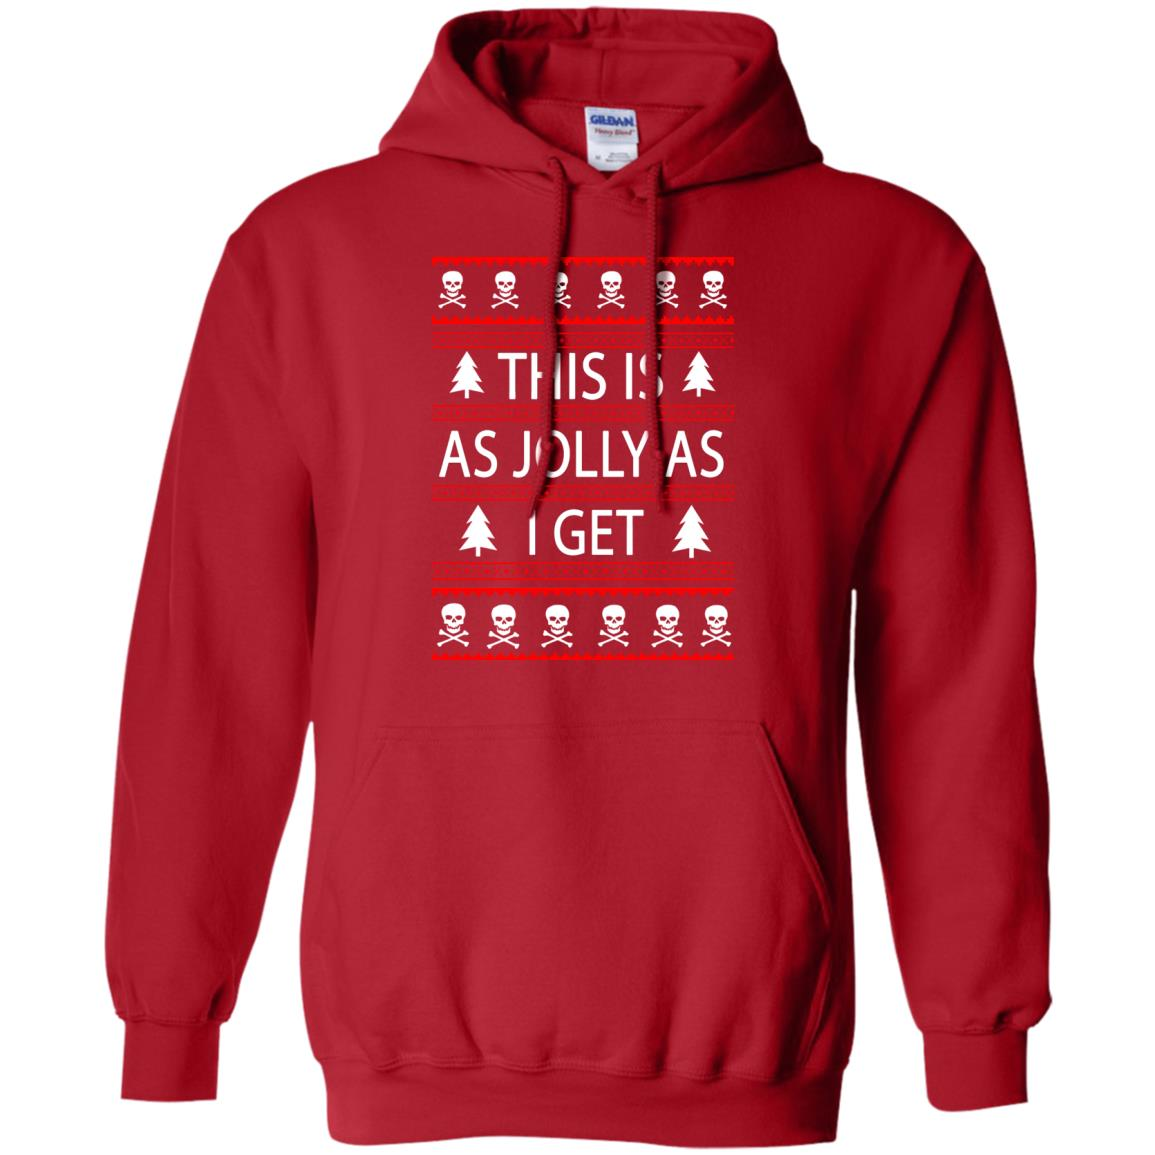 image 3164 - This Is as Jolly as I Get Emo Gothic Christmas Sweatshirts, Hoodie